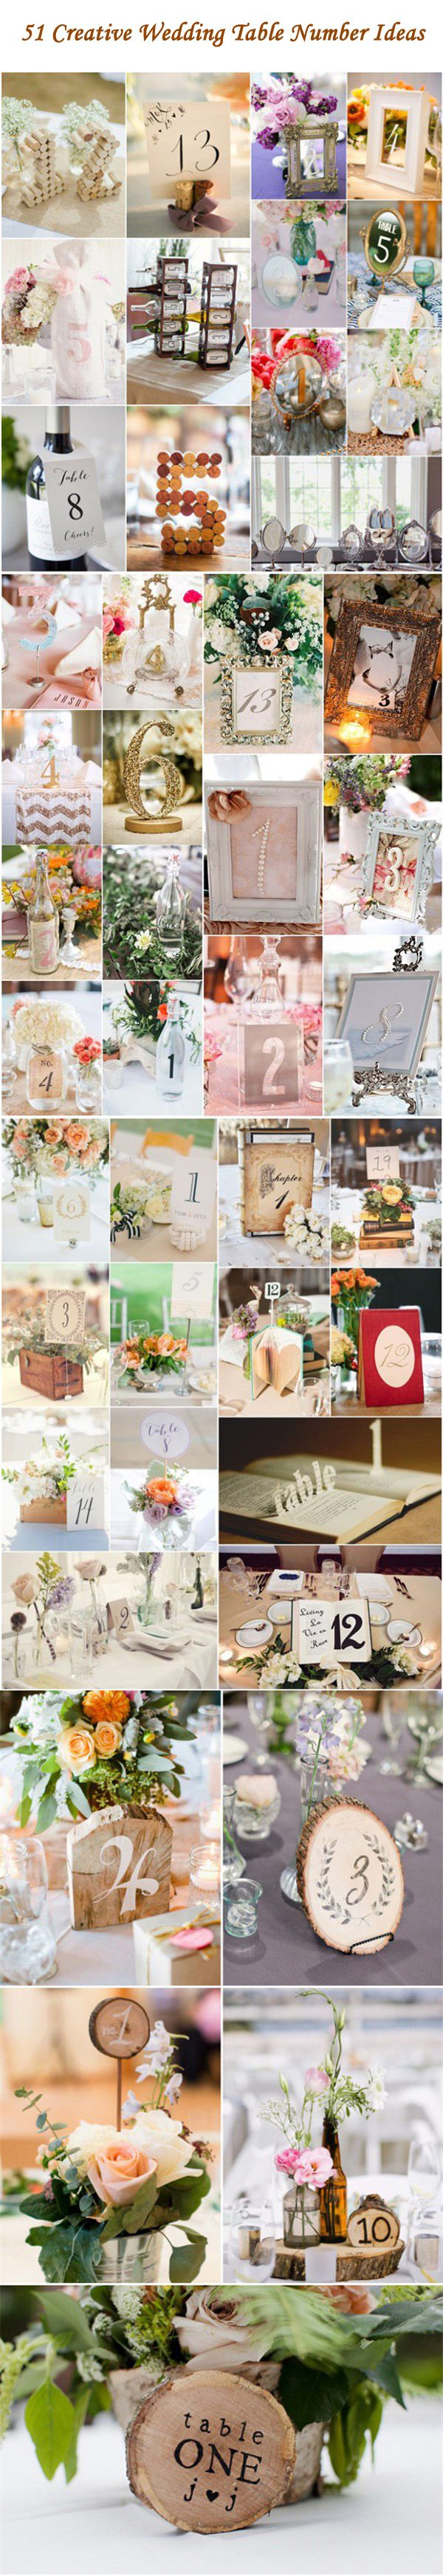 Wedding Decor ideas - 51 Creative DIY Wedding Table Number Ideas http://www.deerpearlflowers.com/51-creative-diy-wedding-table-number-ideas/